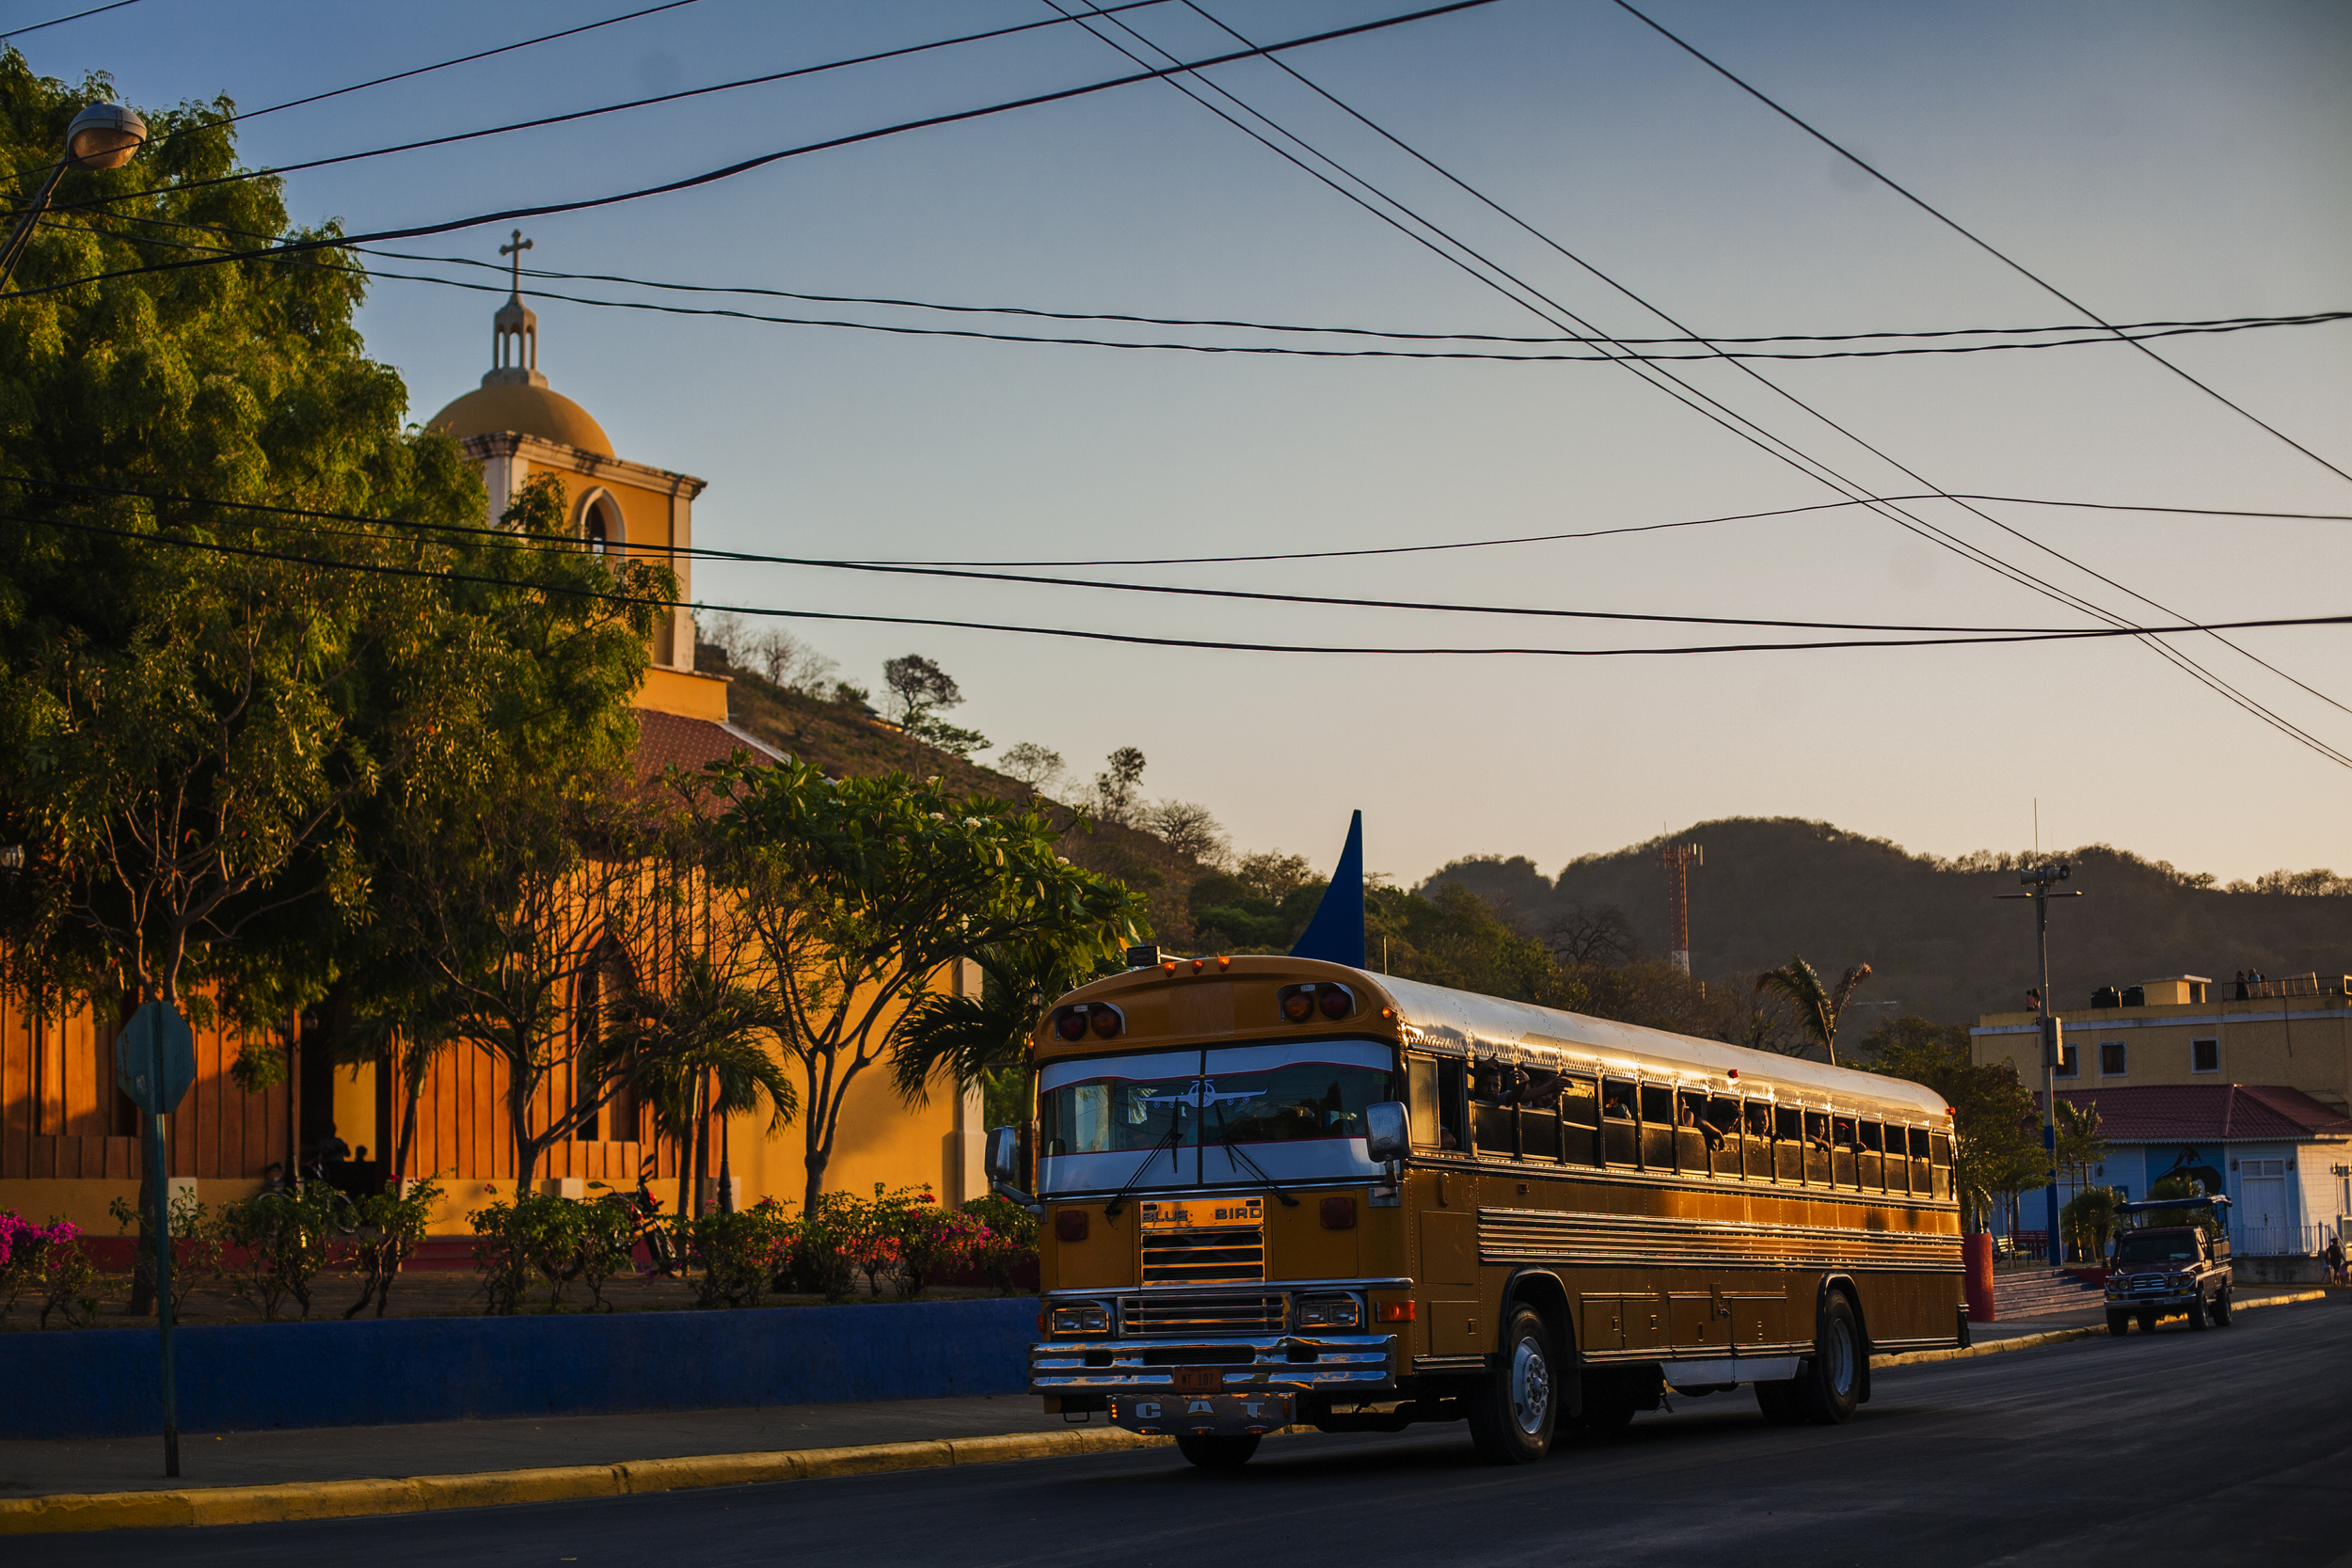 """Yellow """"Chicken bus"""" in front of the church in San Juan"""